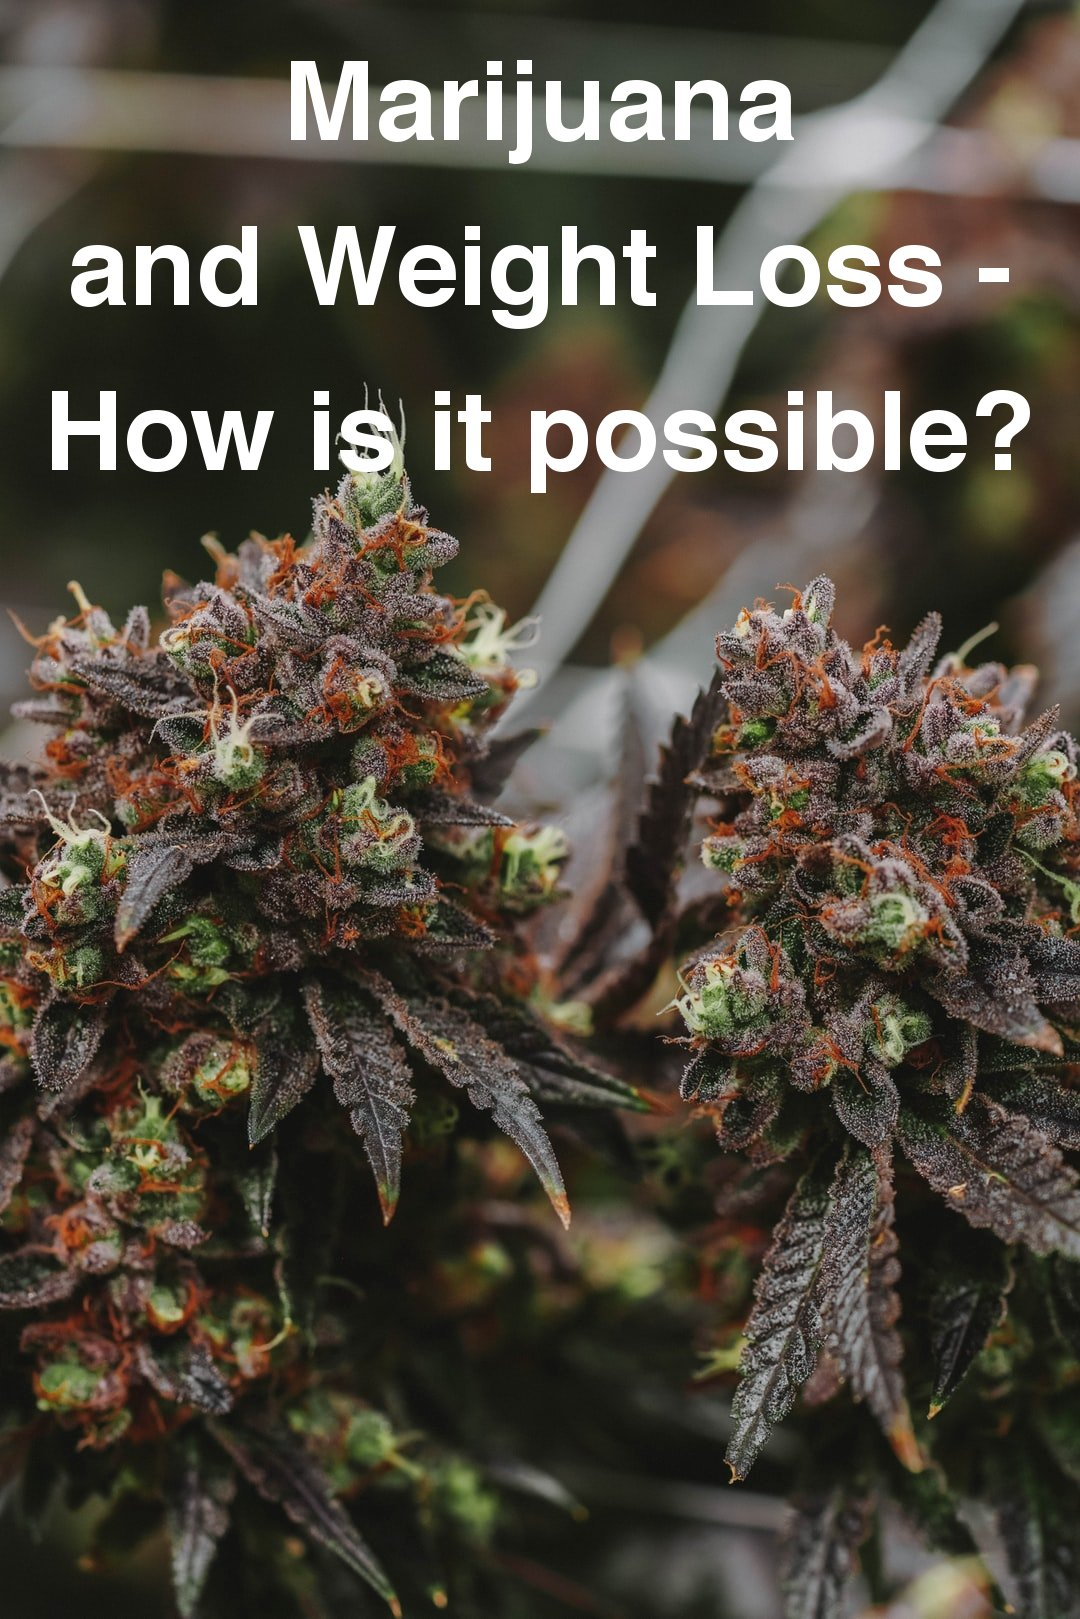 Marijuana and Weight Loss - How is it possible?